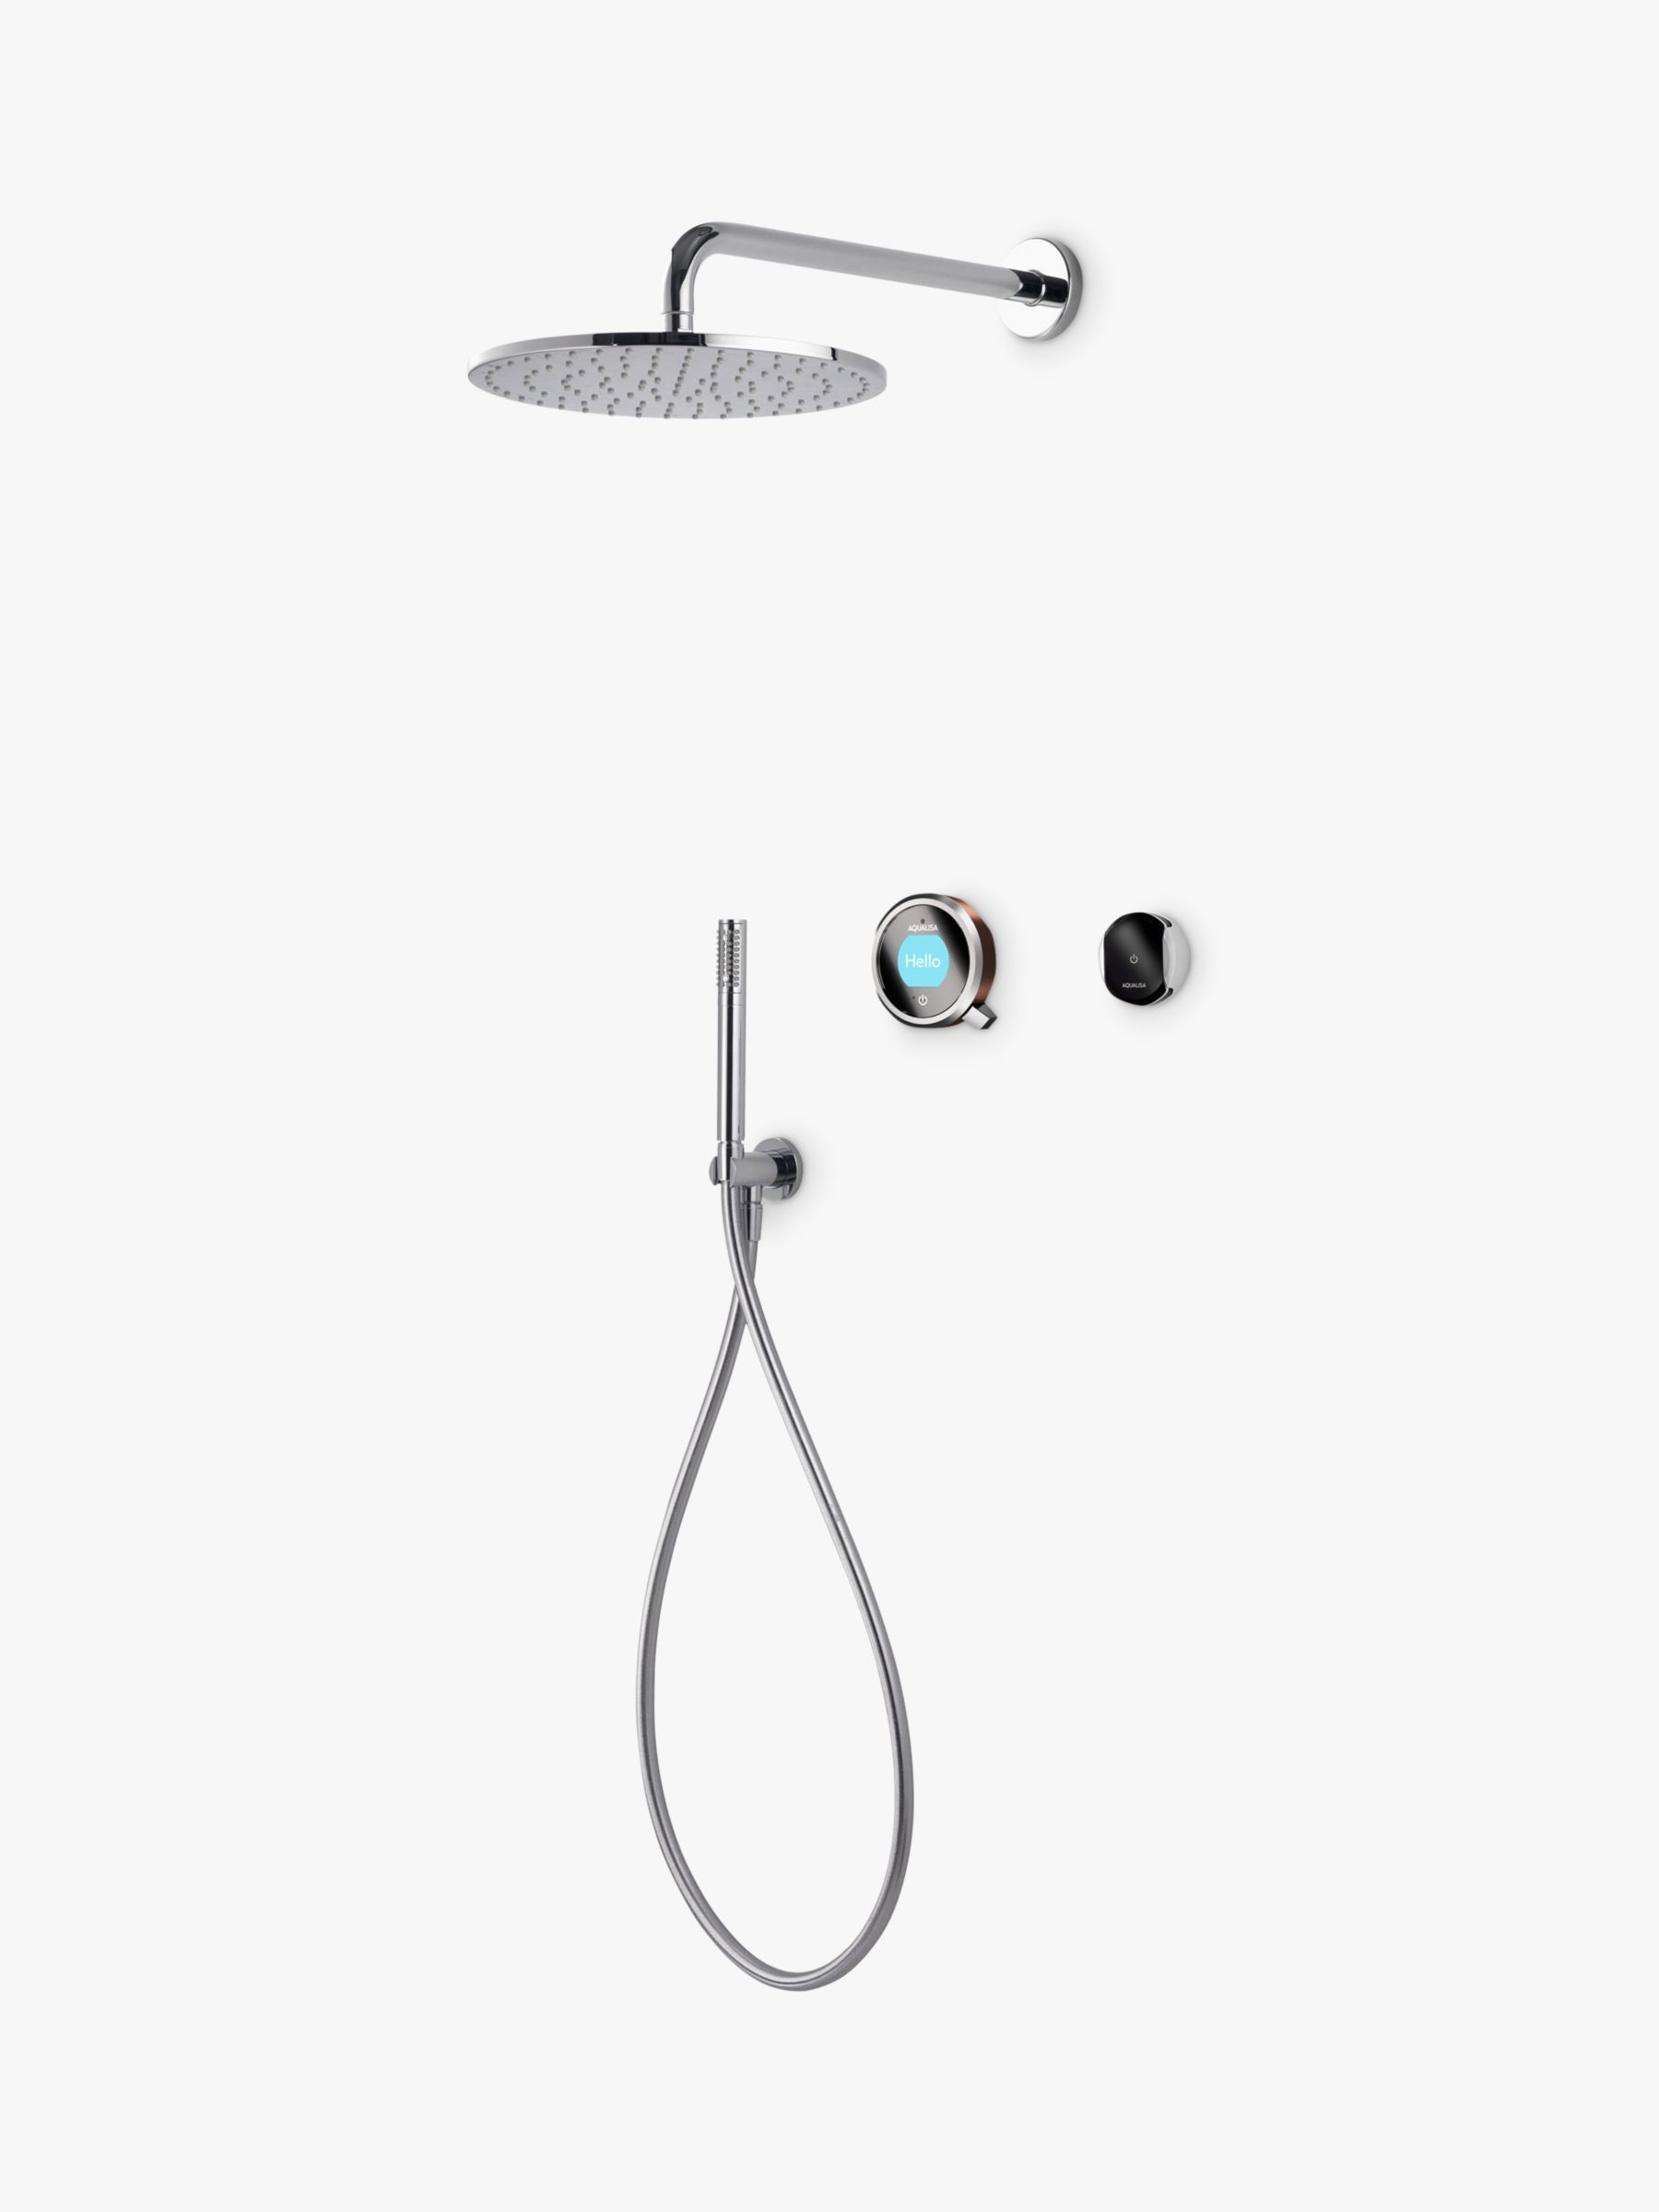 Aqualisa Aqualisa Q EDITION QES6 Smart Mixer with Shower Handset and Drencher, Silver